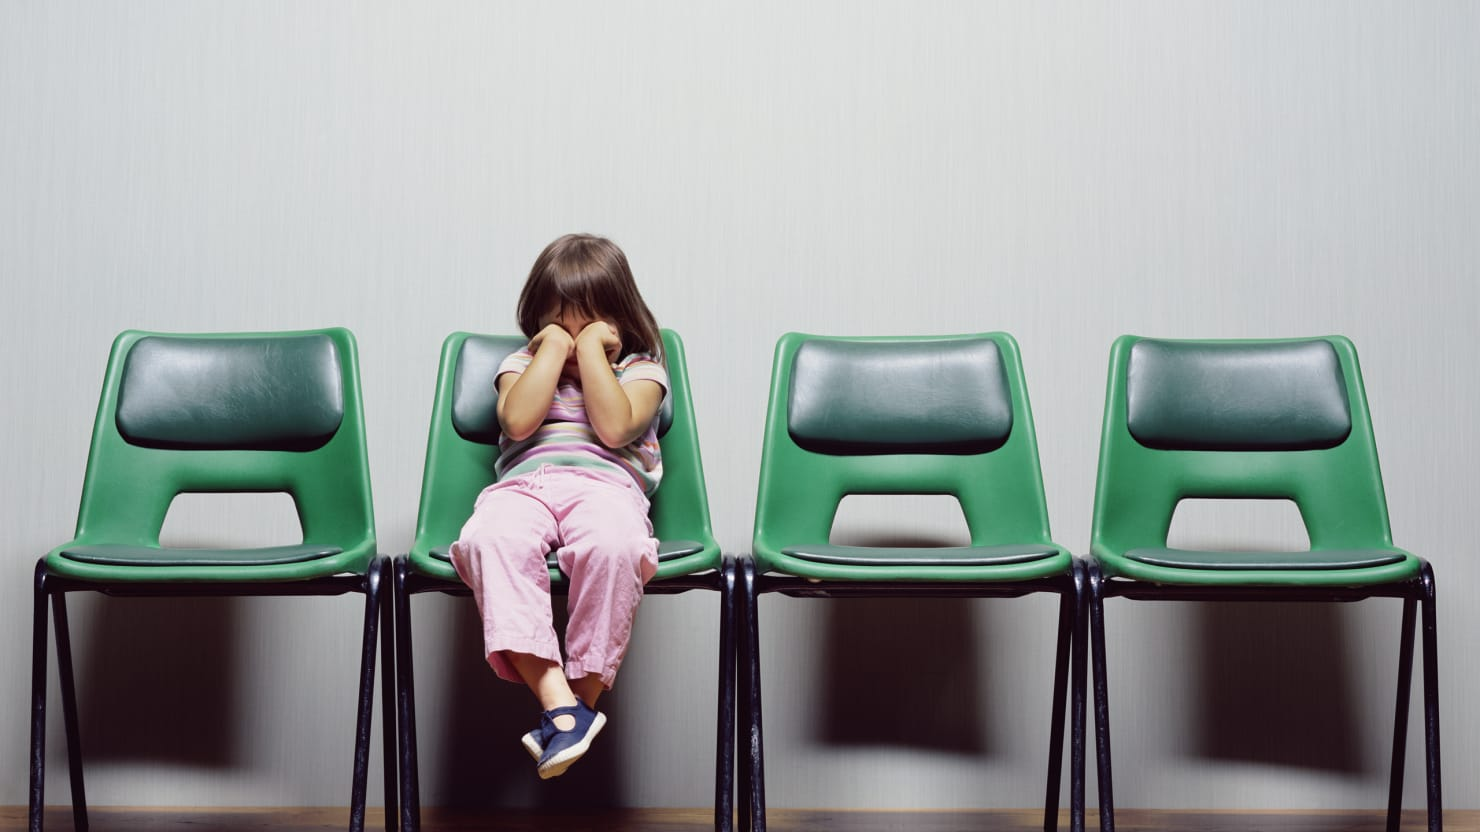 CDC Report Paints Bleak Picture of American Kids With Mental Disorders